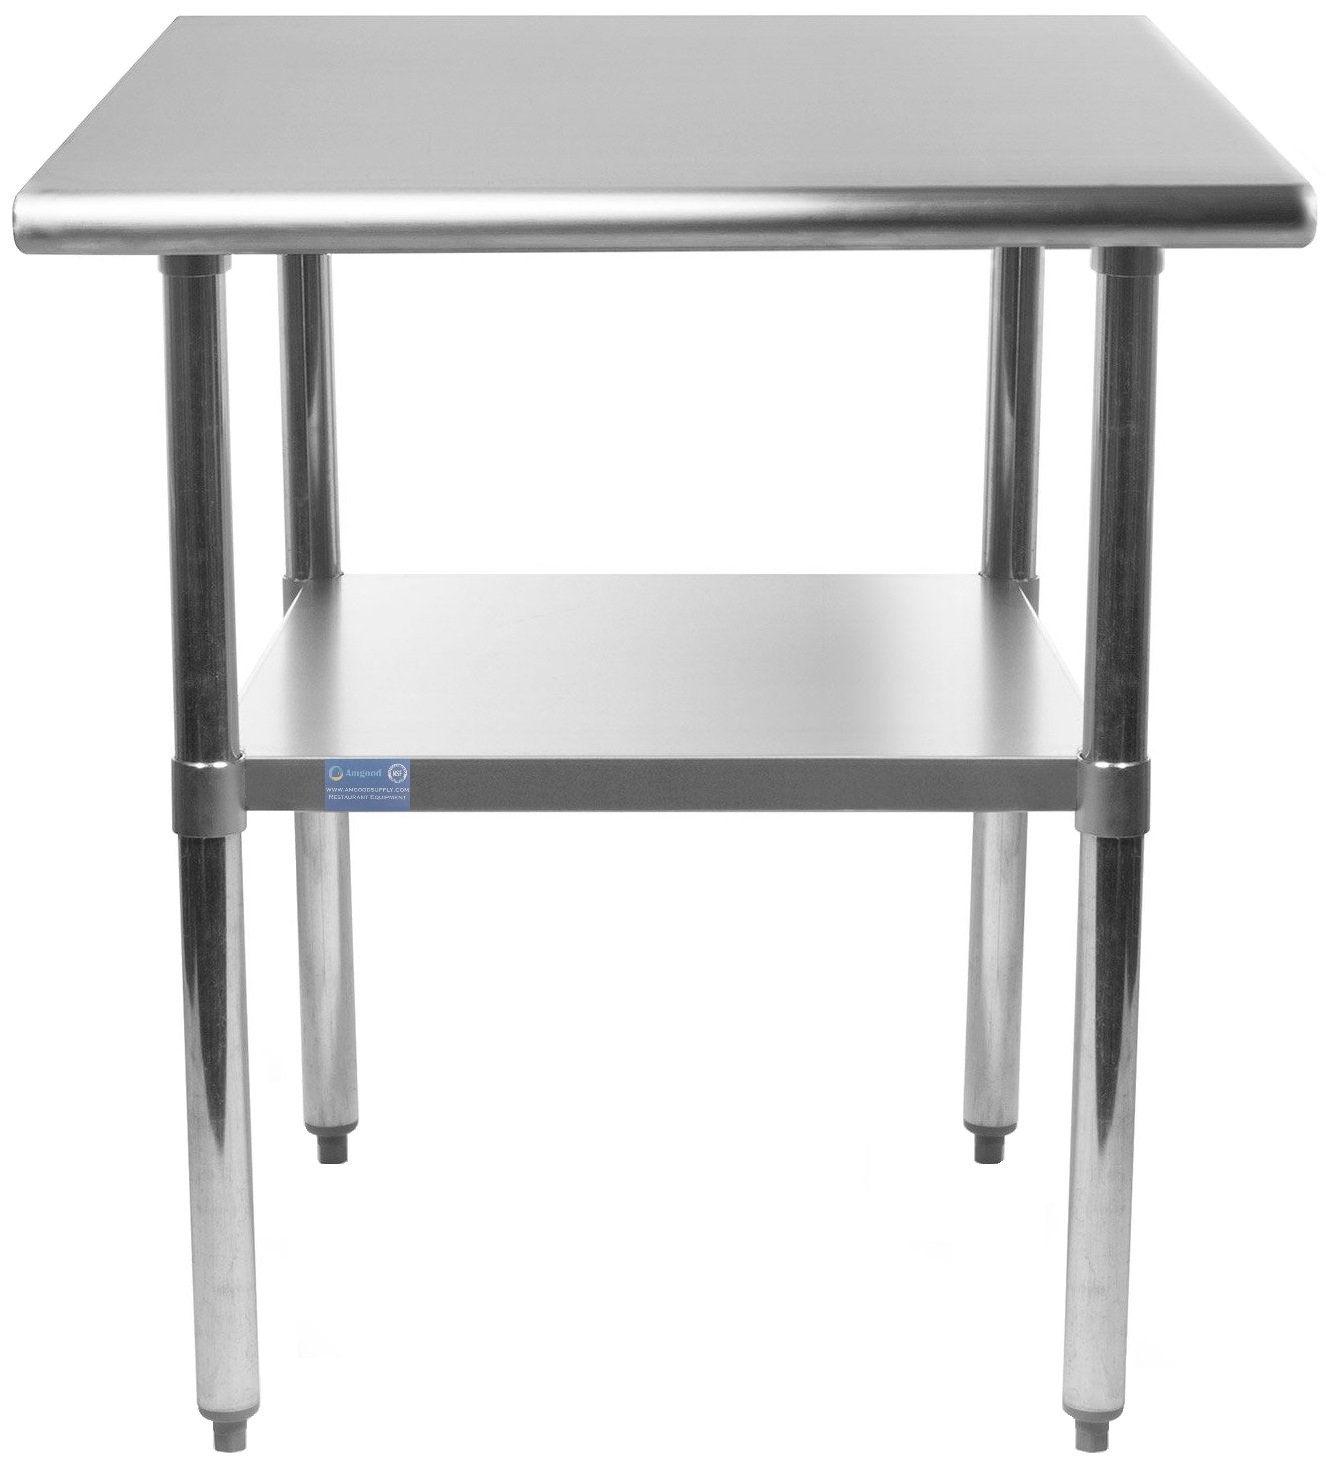 14'' X 24'' Stainless Steel Work Table | Small Kitchen Island Metal Table For Home or Restaurant